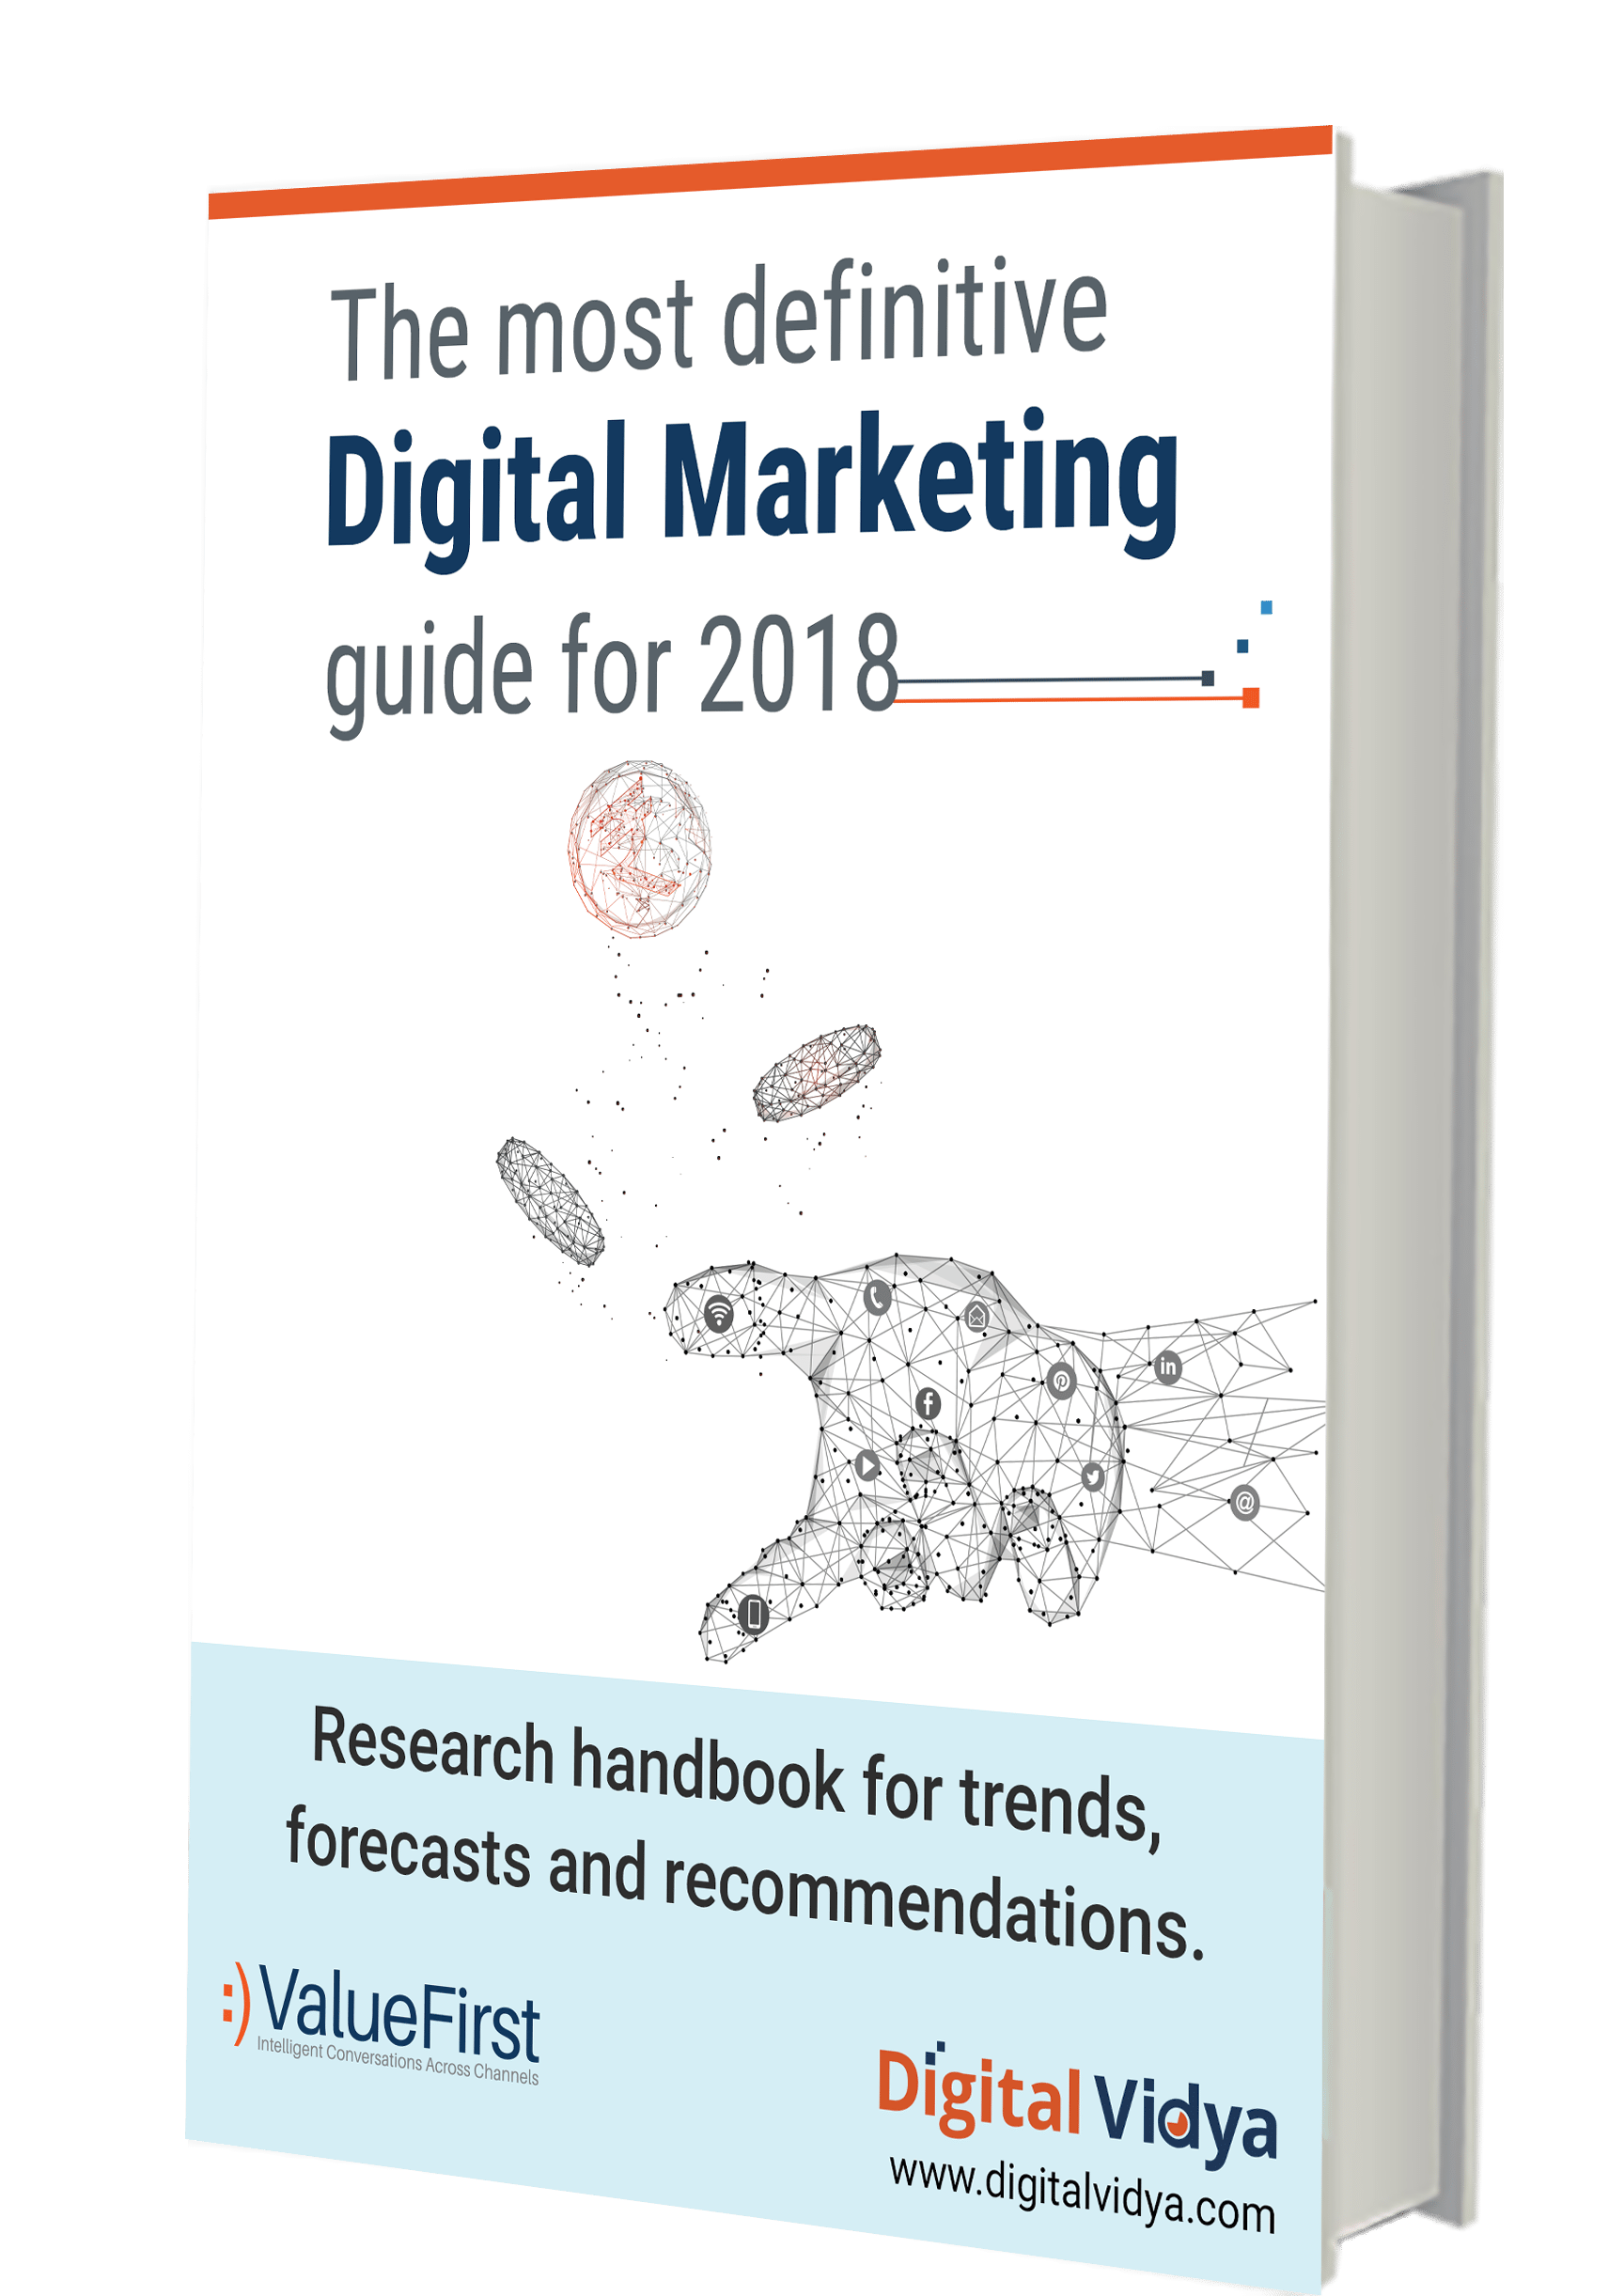 Annual Report of Digital Marketing in India in 2018